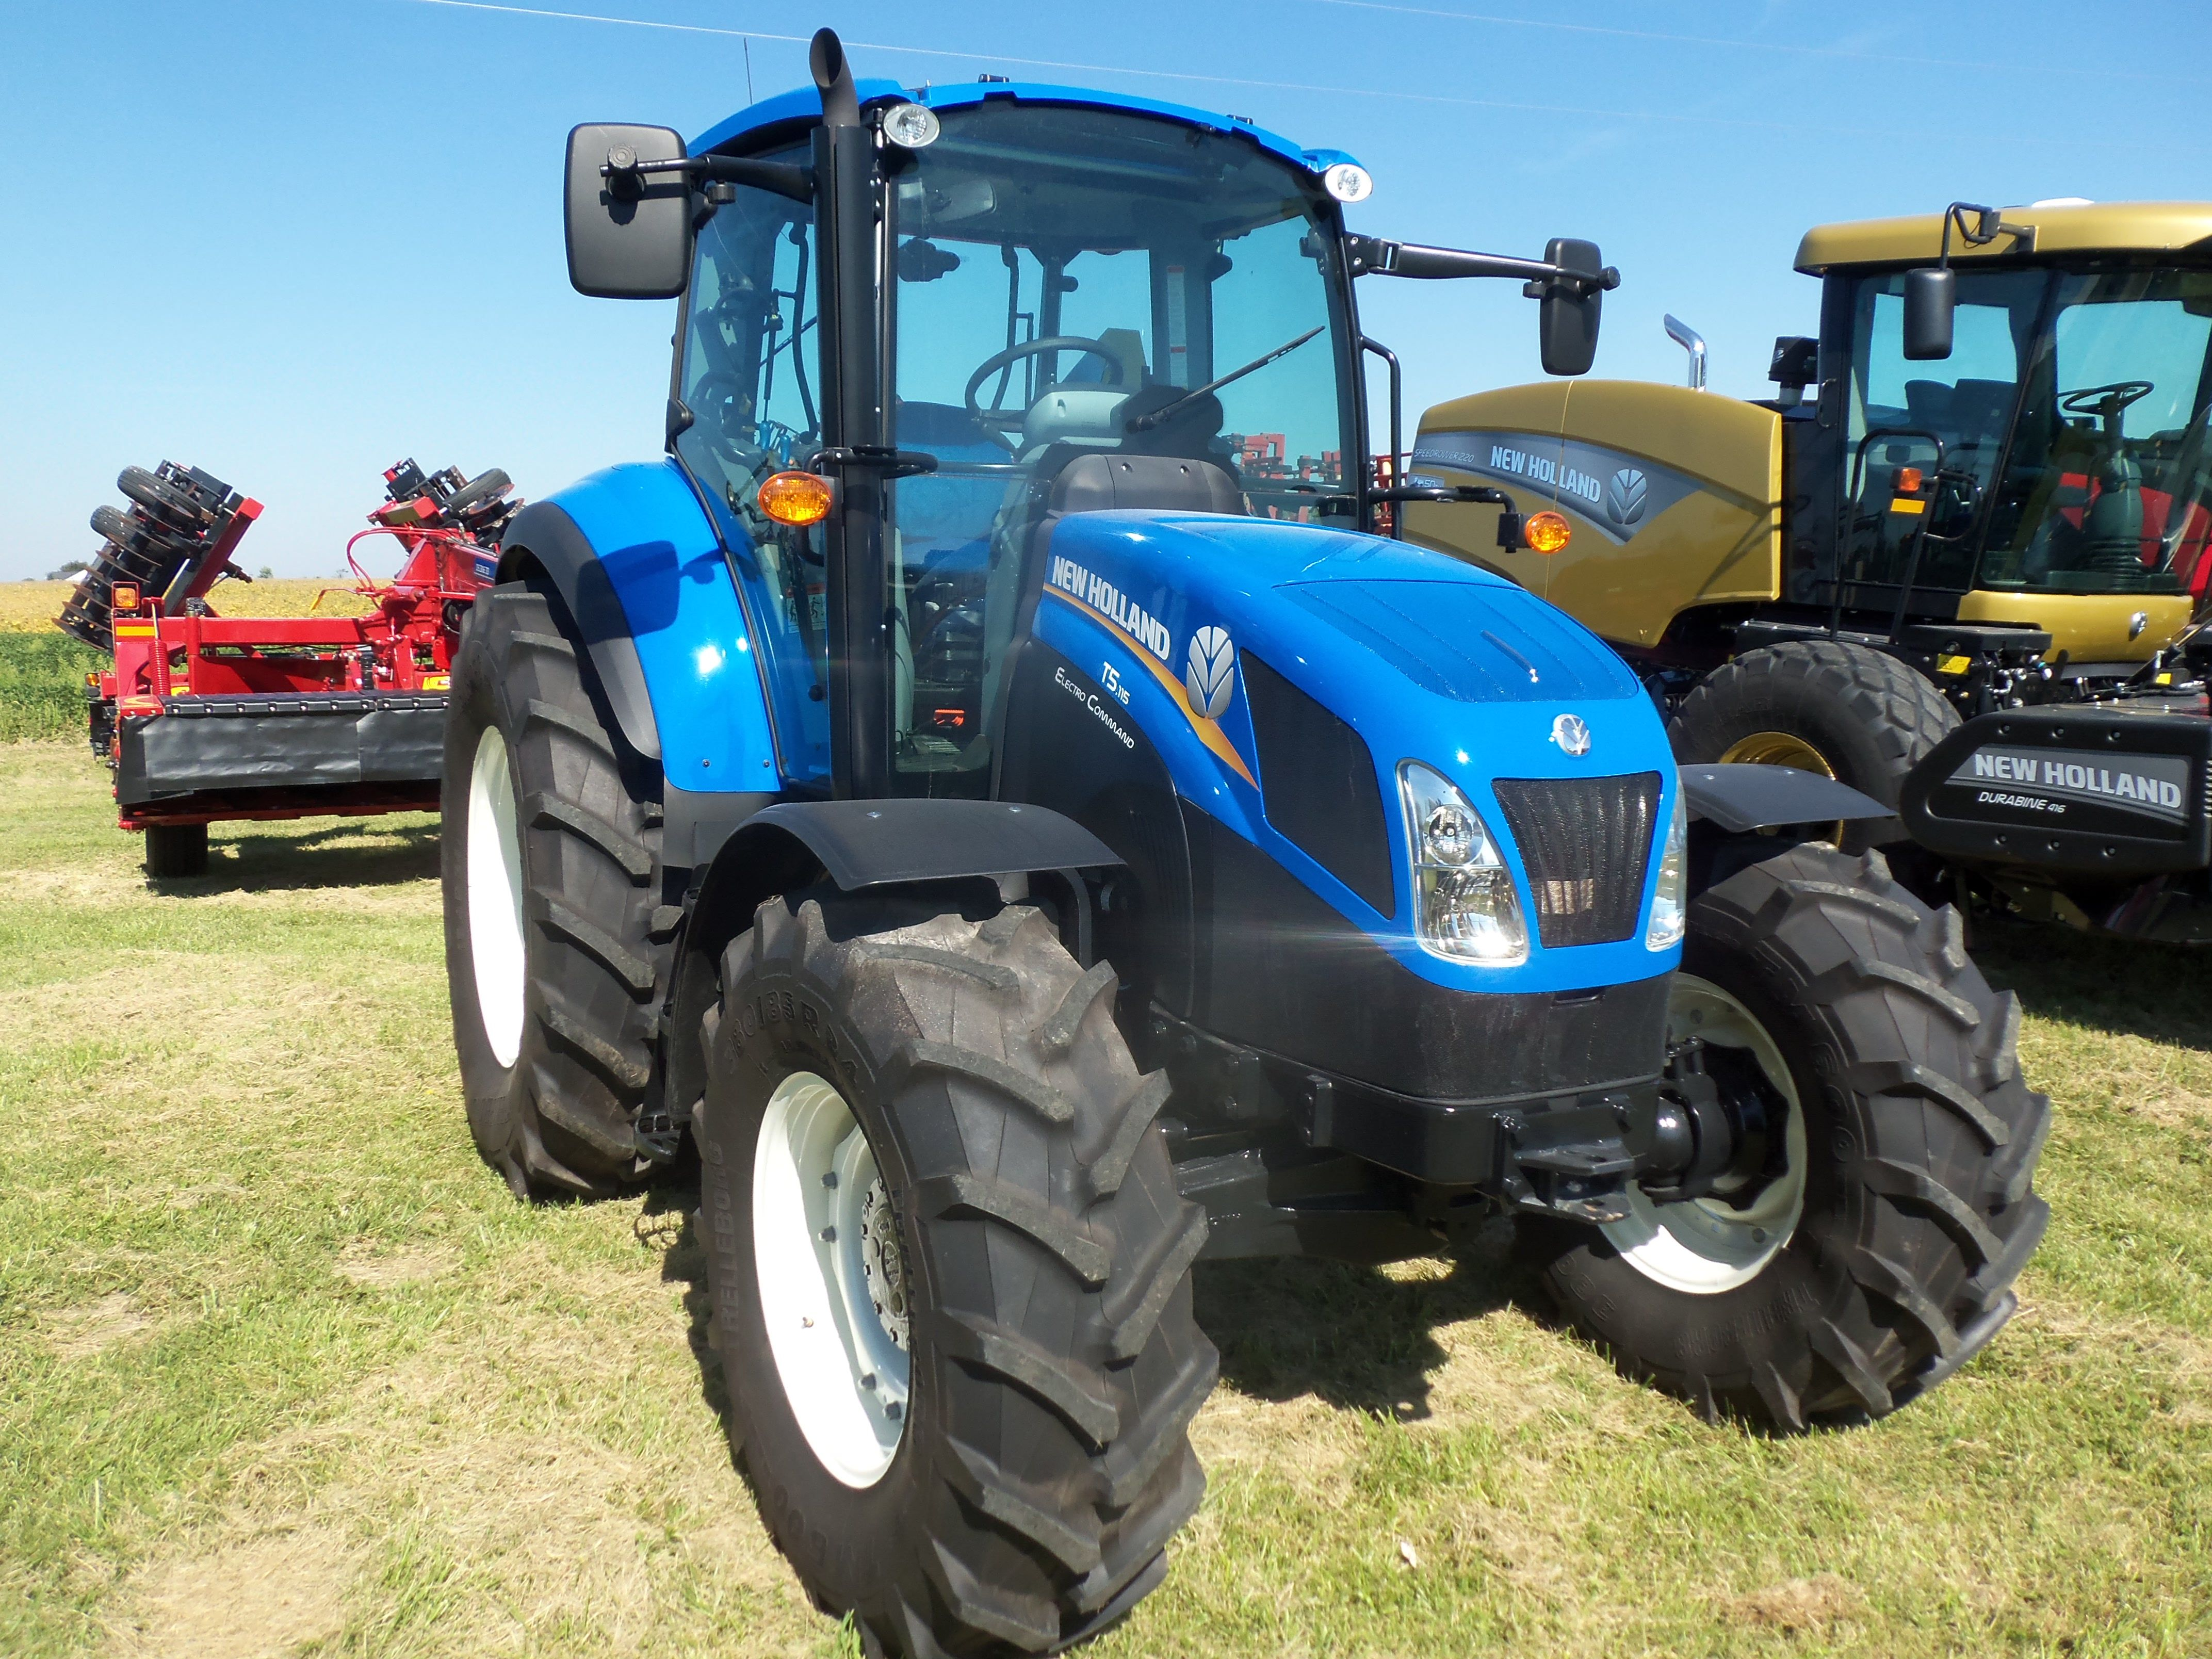 New Holland T5115 Tractor Tracteur Vintage